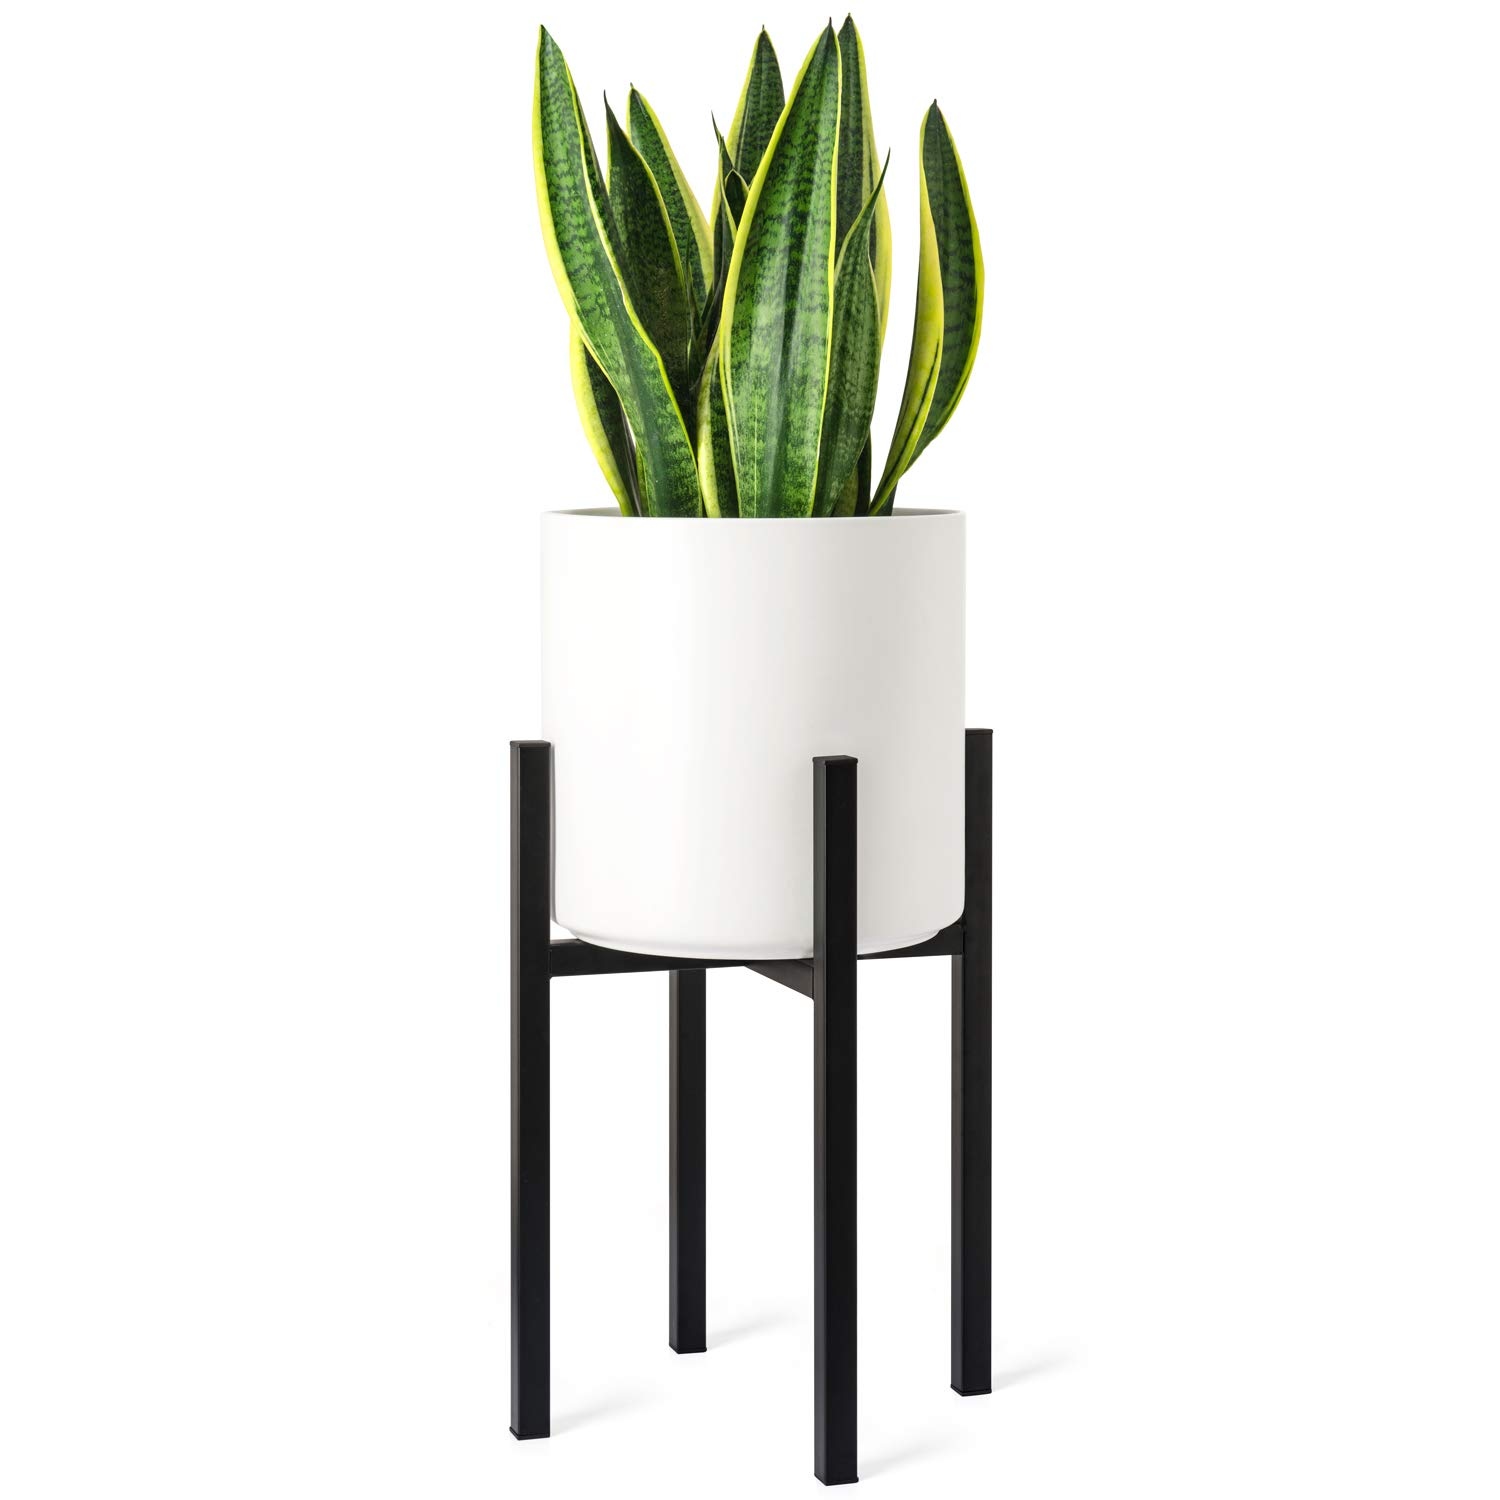 Mkono Plant Stand Mid Century Modern Tall Flower Pot Stands Indoor Outdoor Metal Potted Plant Holder, Plants Display Rack Fits Up to 10 Inch Planter(Planter Not Included) by Mkono